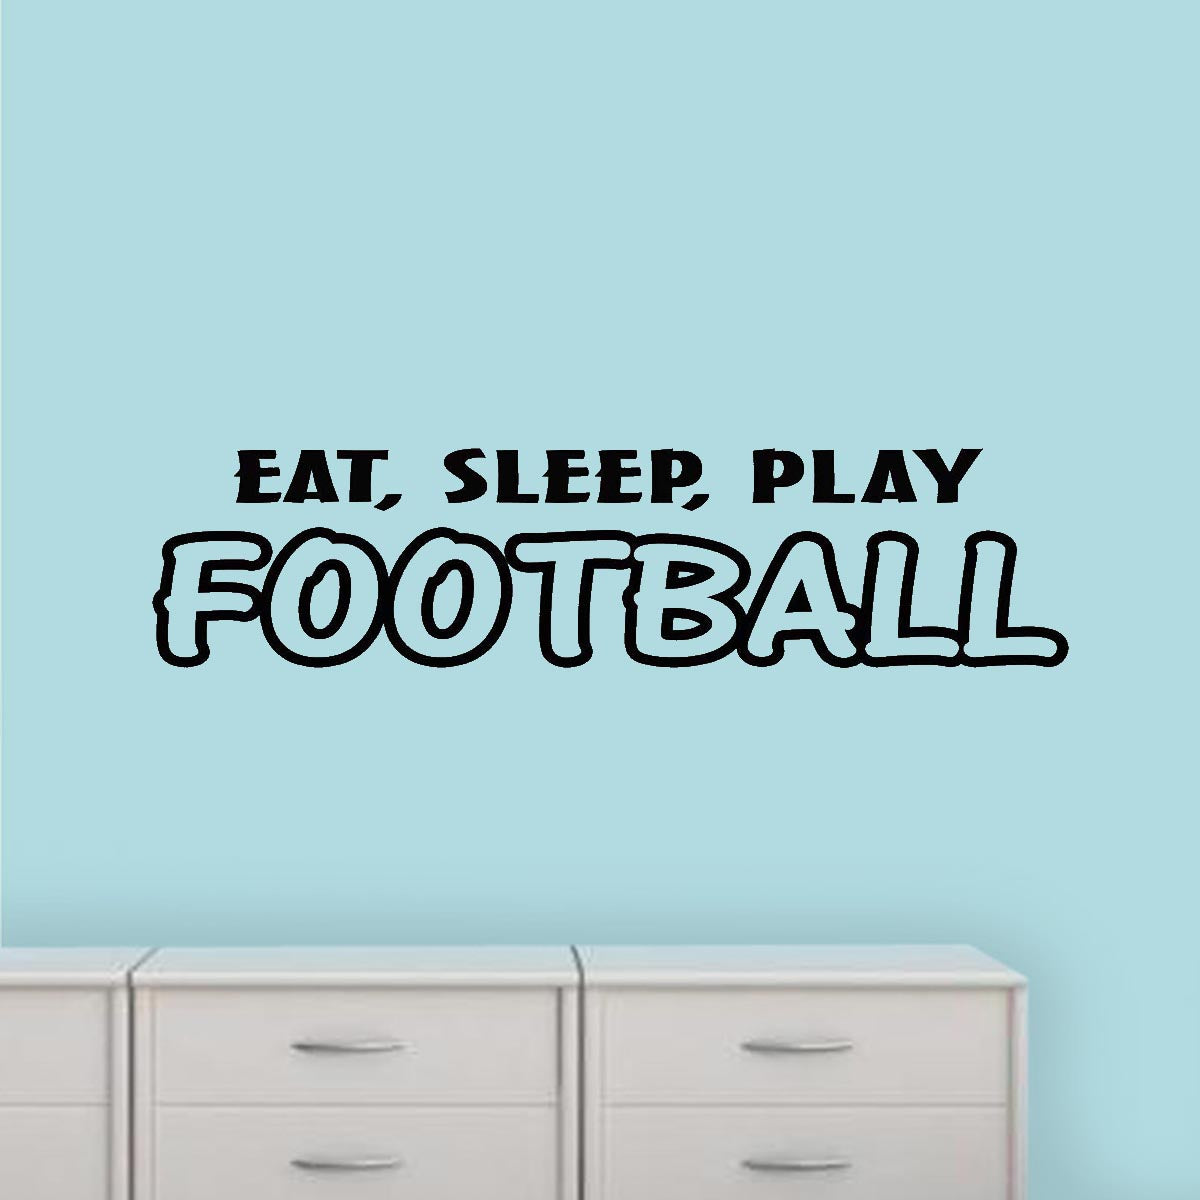 Eat Sleep Football Repeat Sports Quote Wall Sticker WS-43034